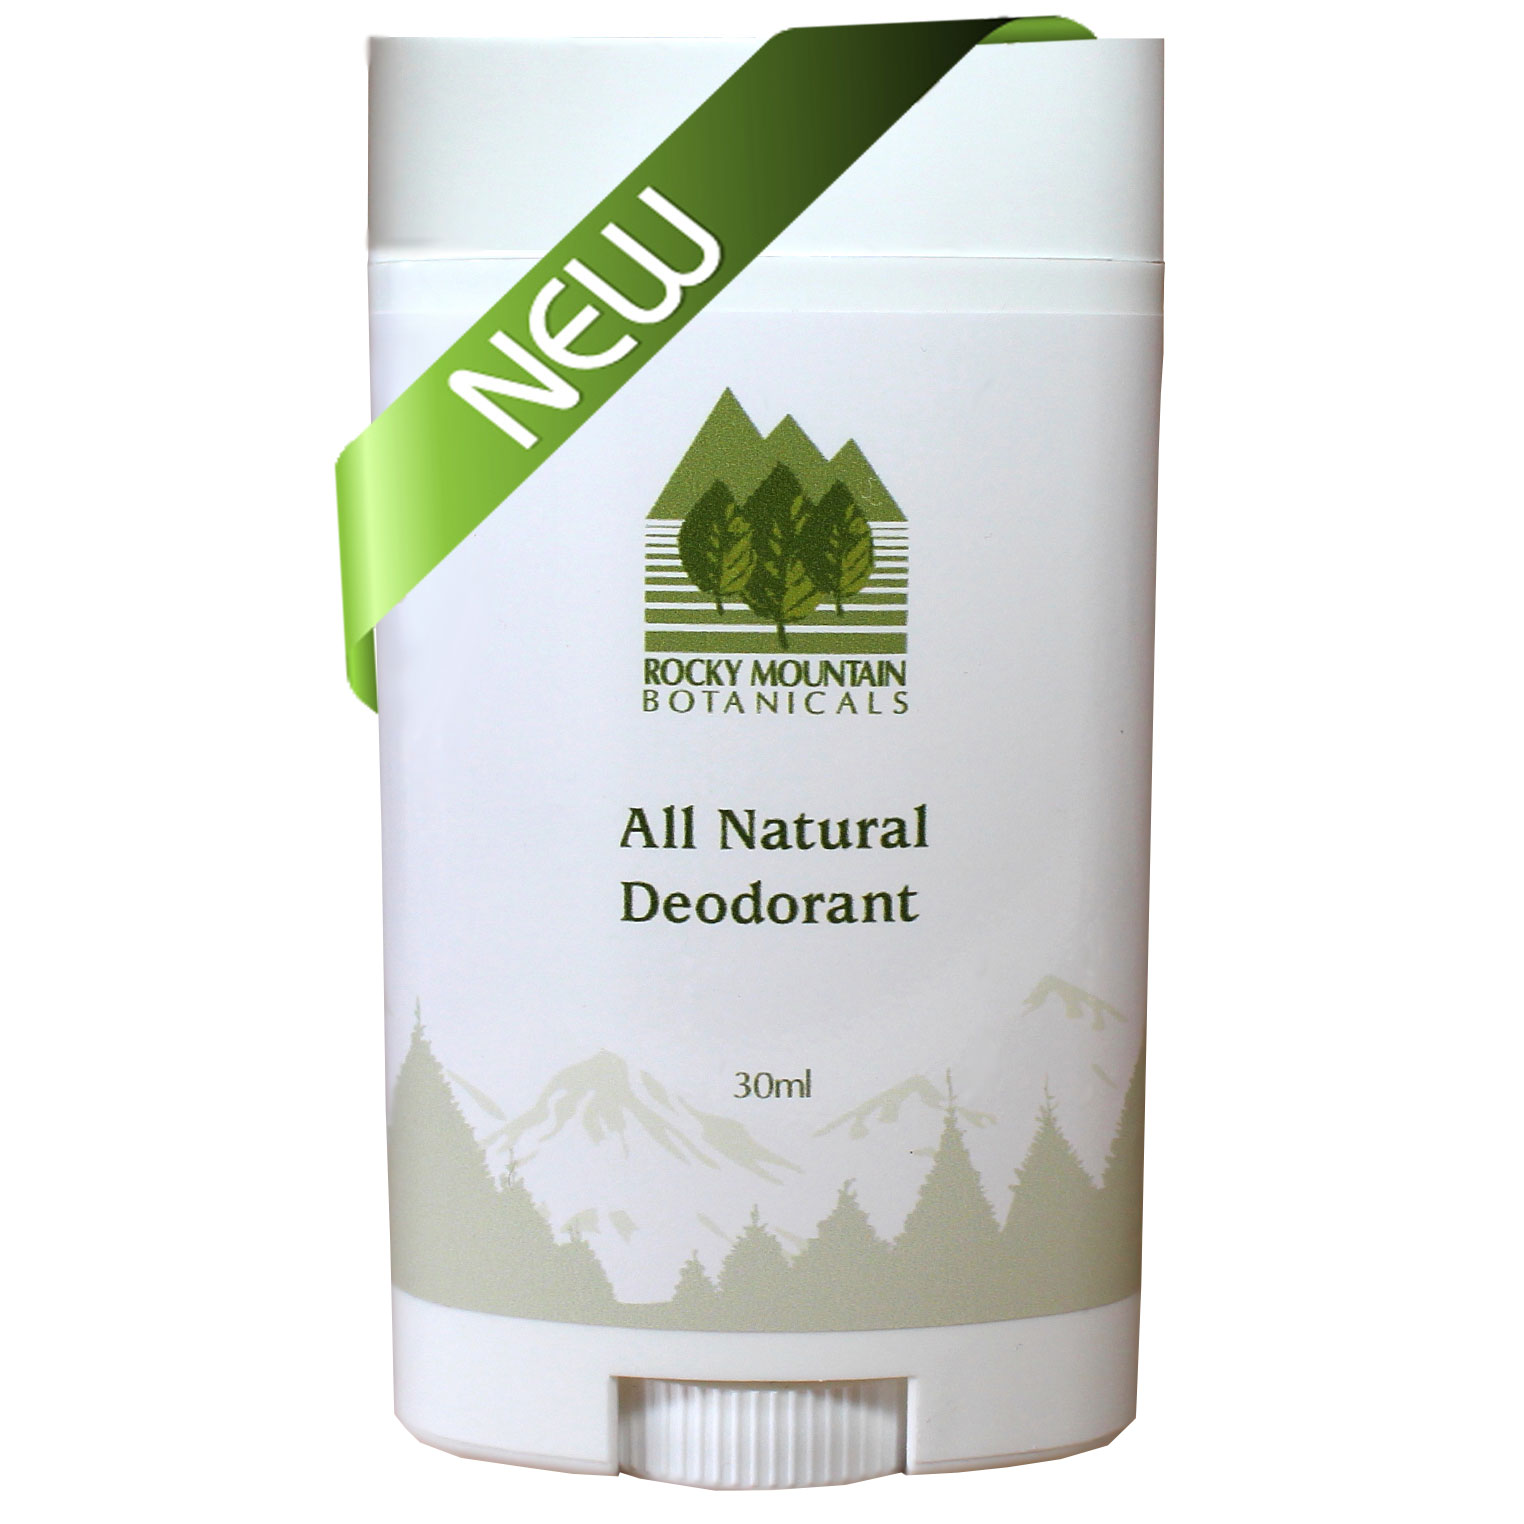 The Best Natural Deodorant Reviews